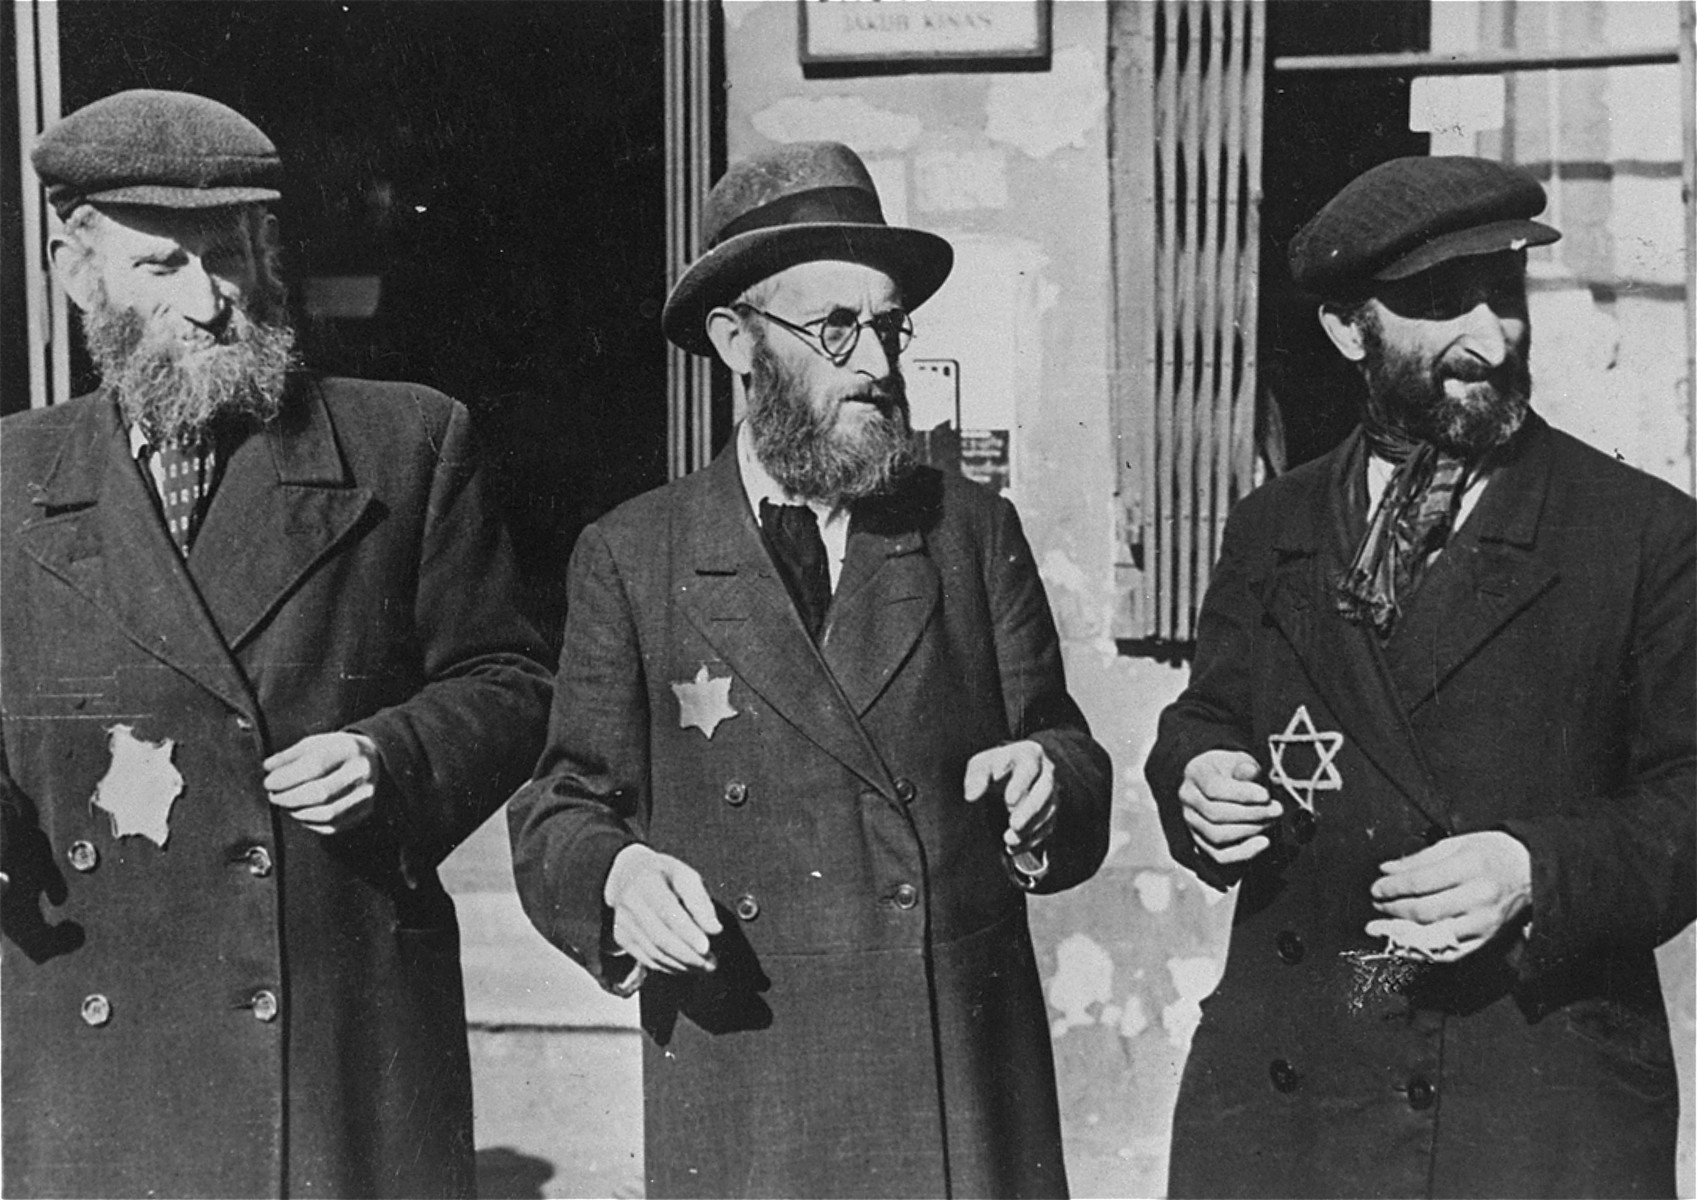 Three Jewish men stand outside a building in the Lodz ghetto.